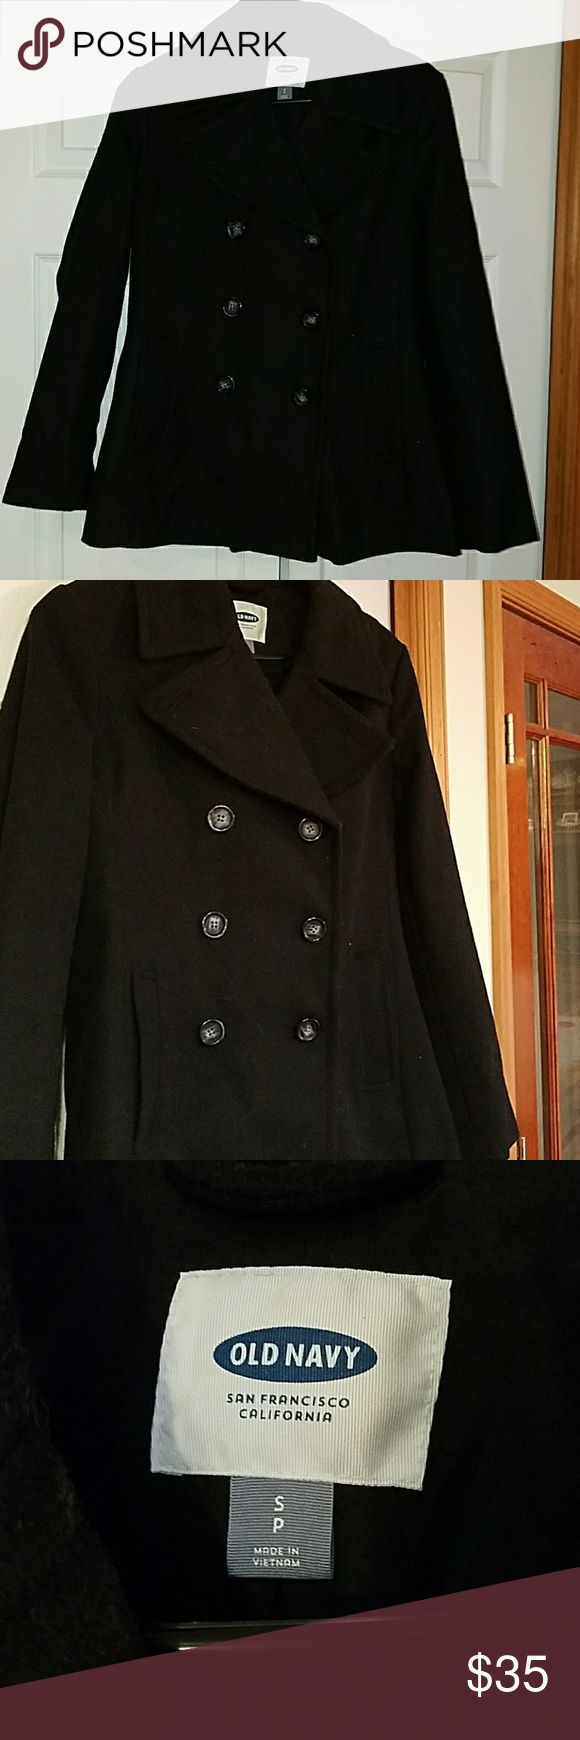 Black Pea Coat - Old Navy - Size Small Never used, black pea coat Old Navy Jackets & Coats Pea Coats